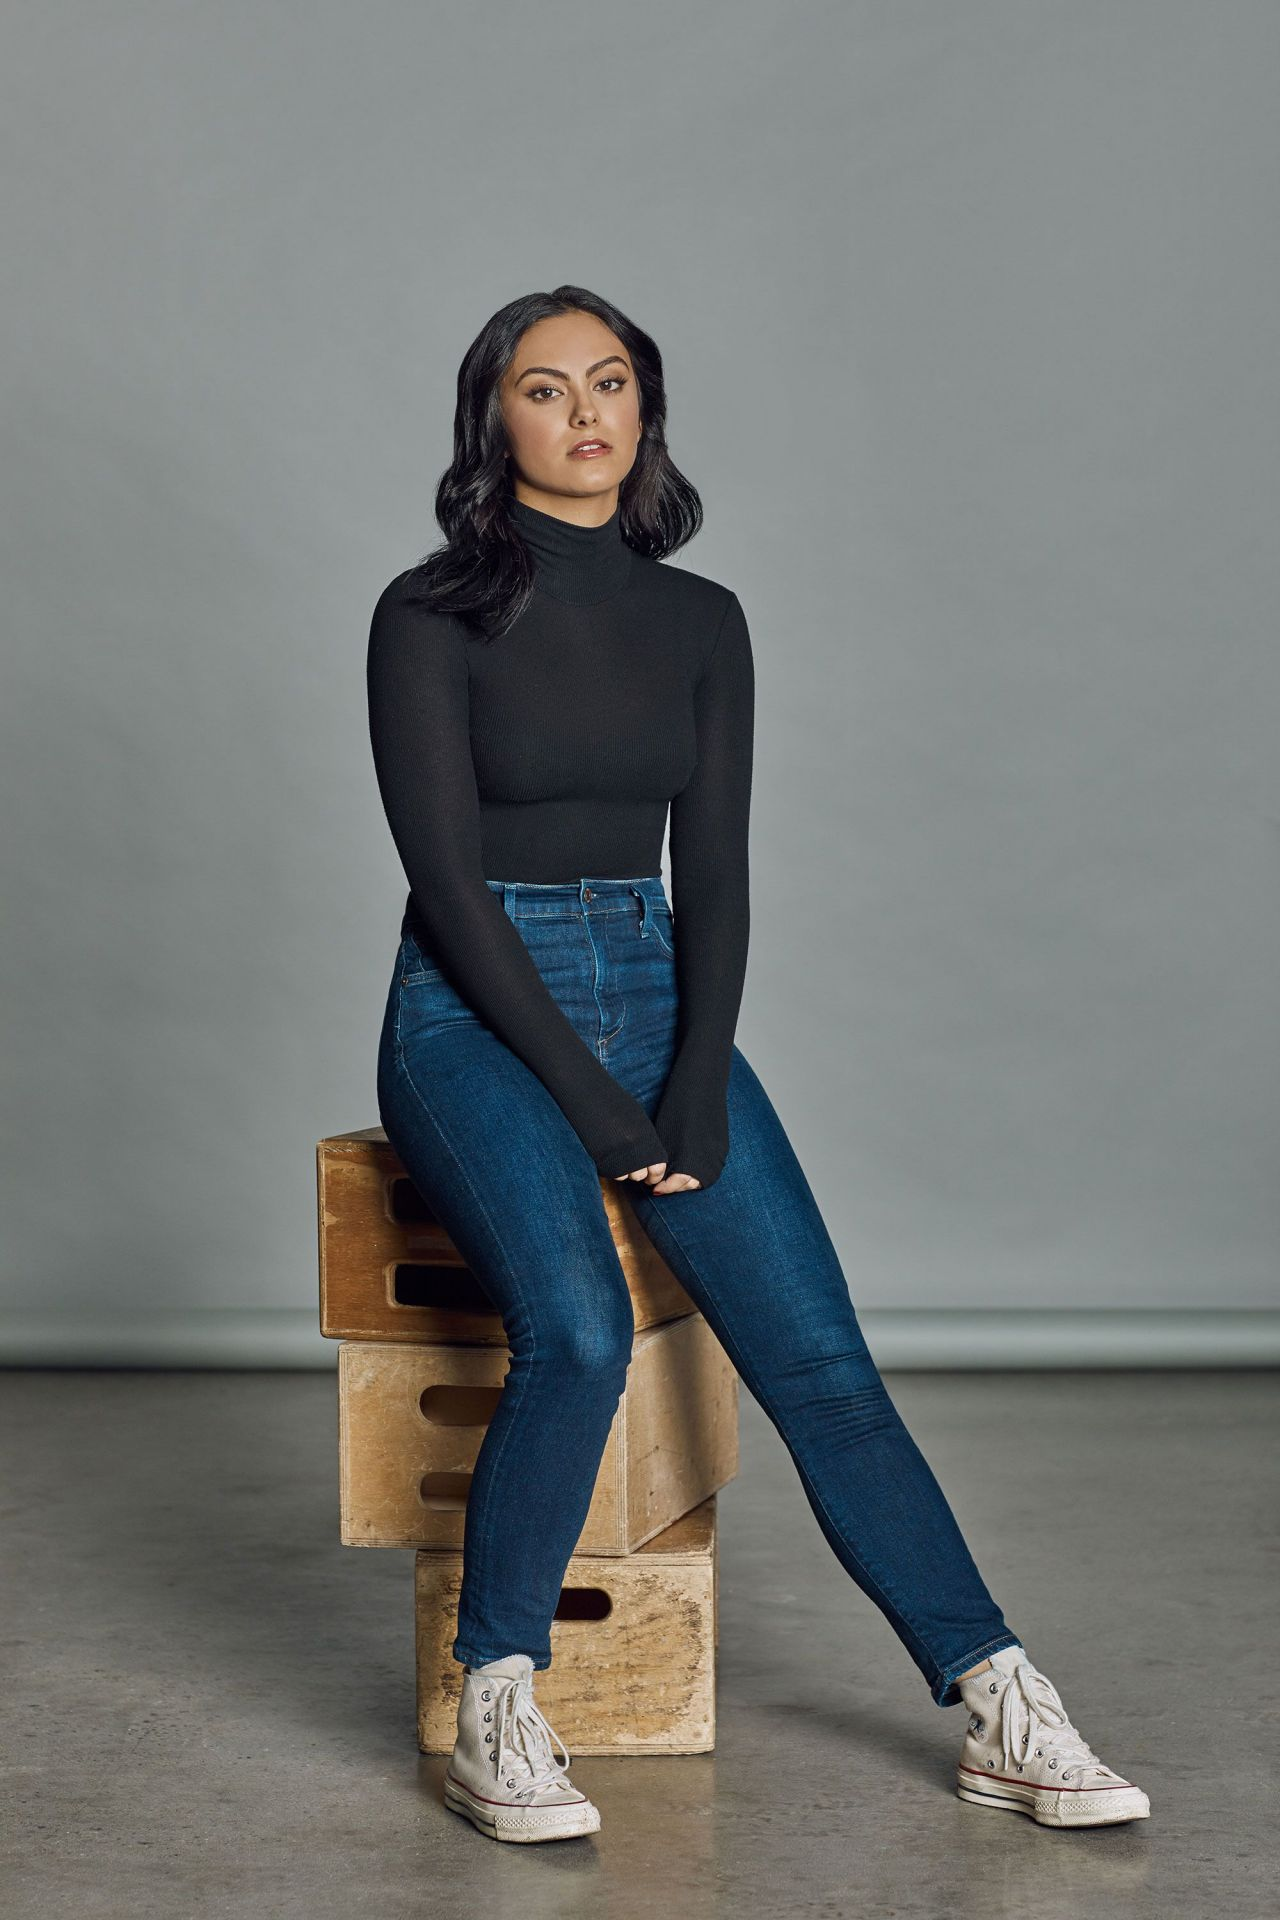 Camila Mendes  Photoshoot for Harpers Bazaar 2018